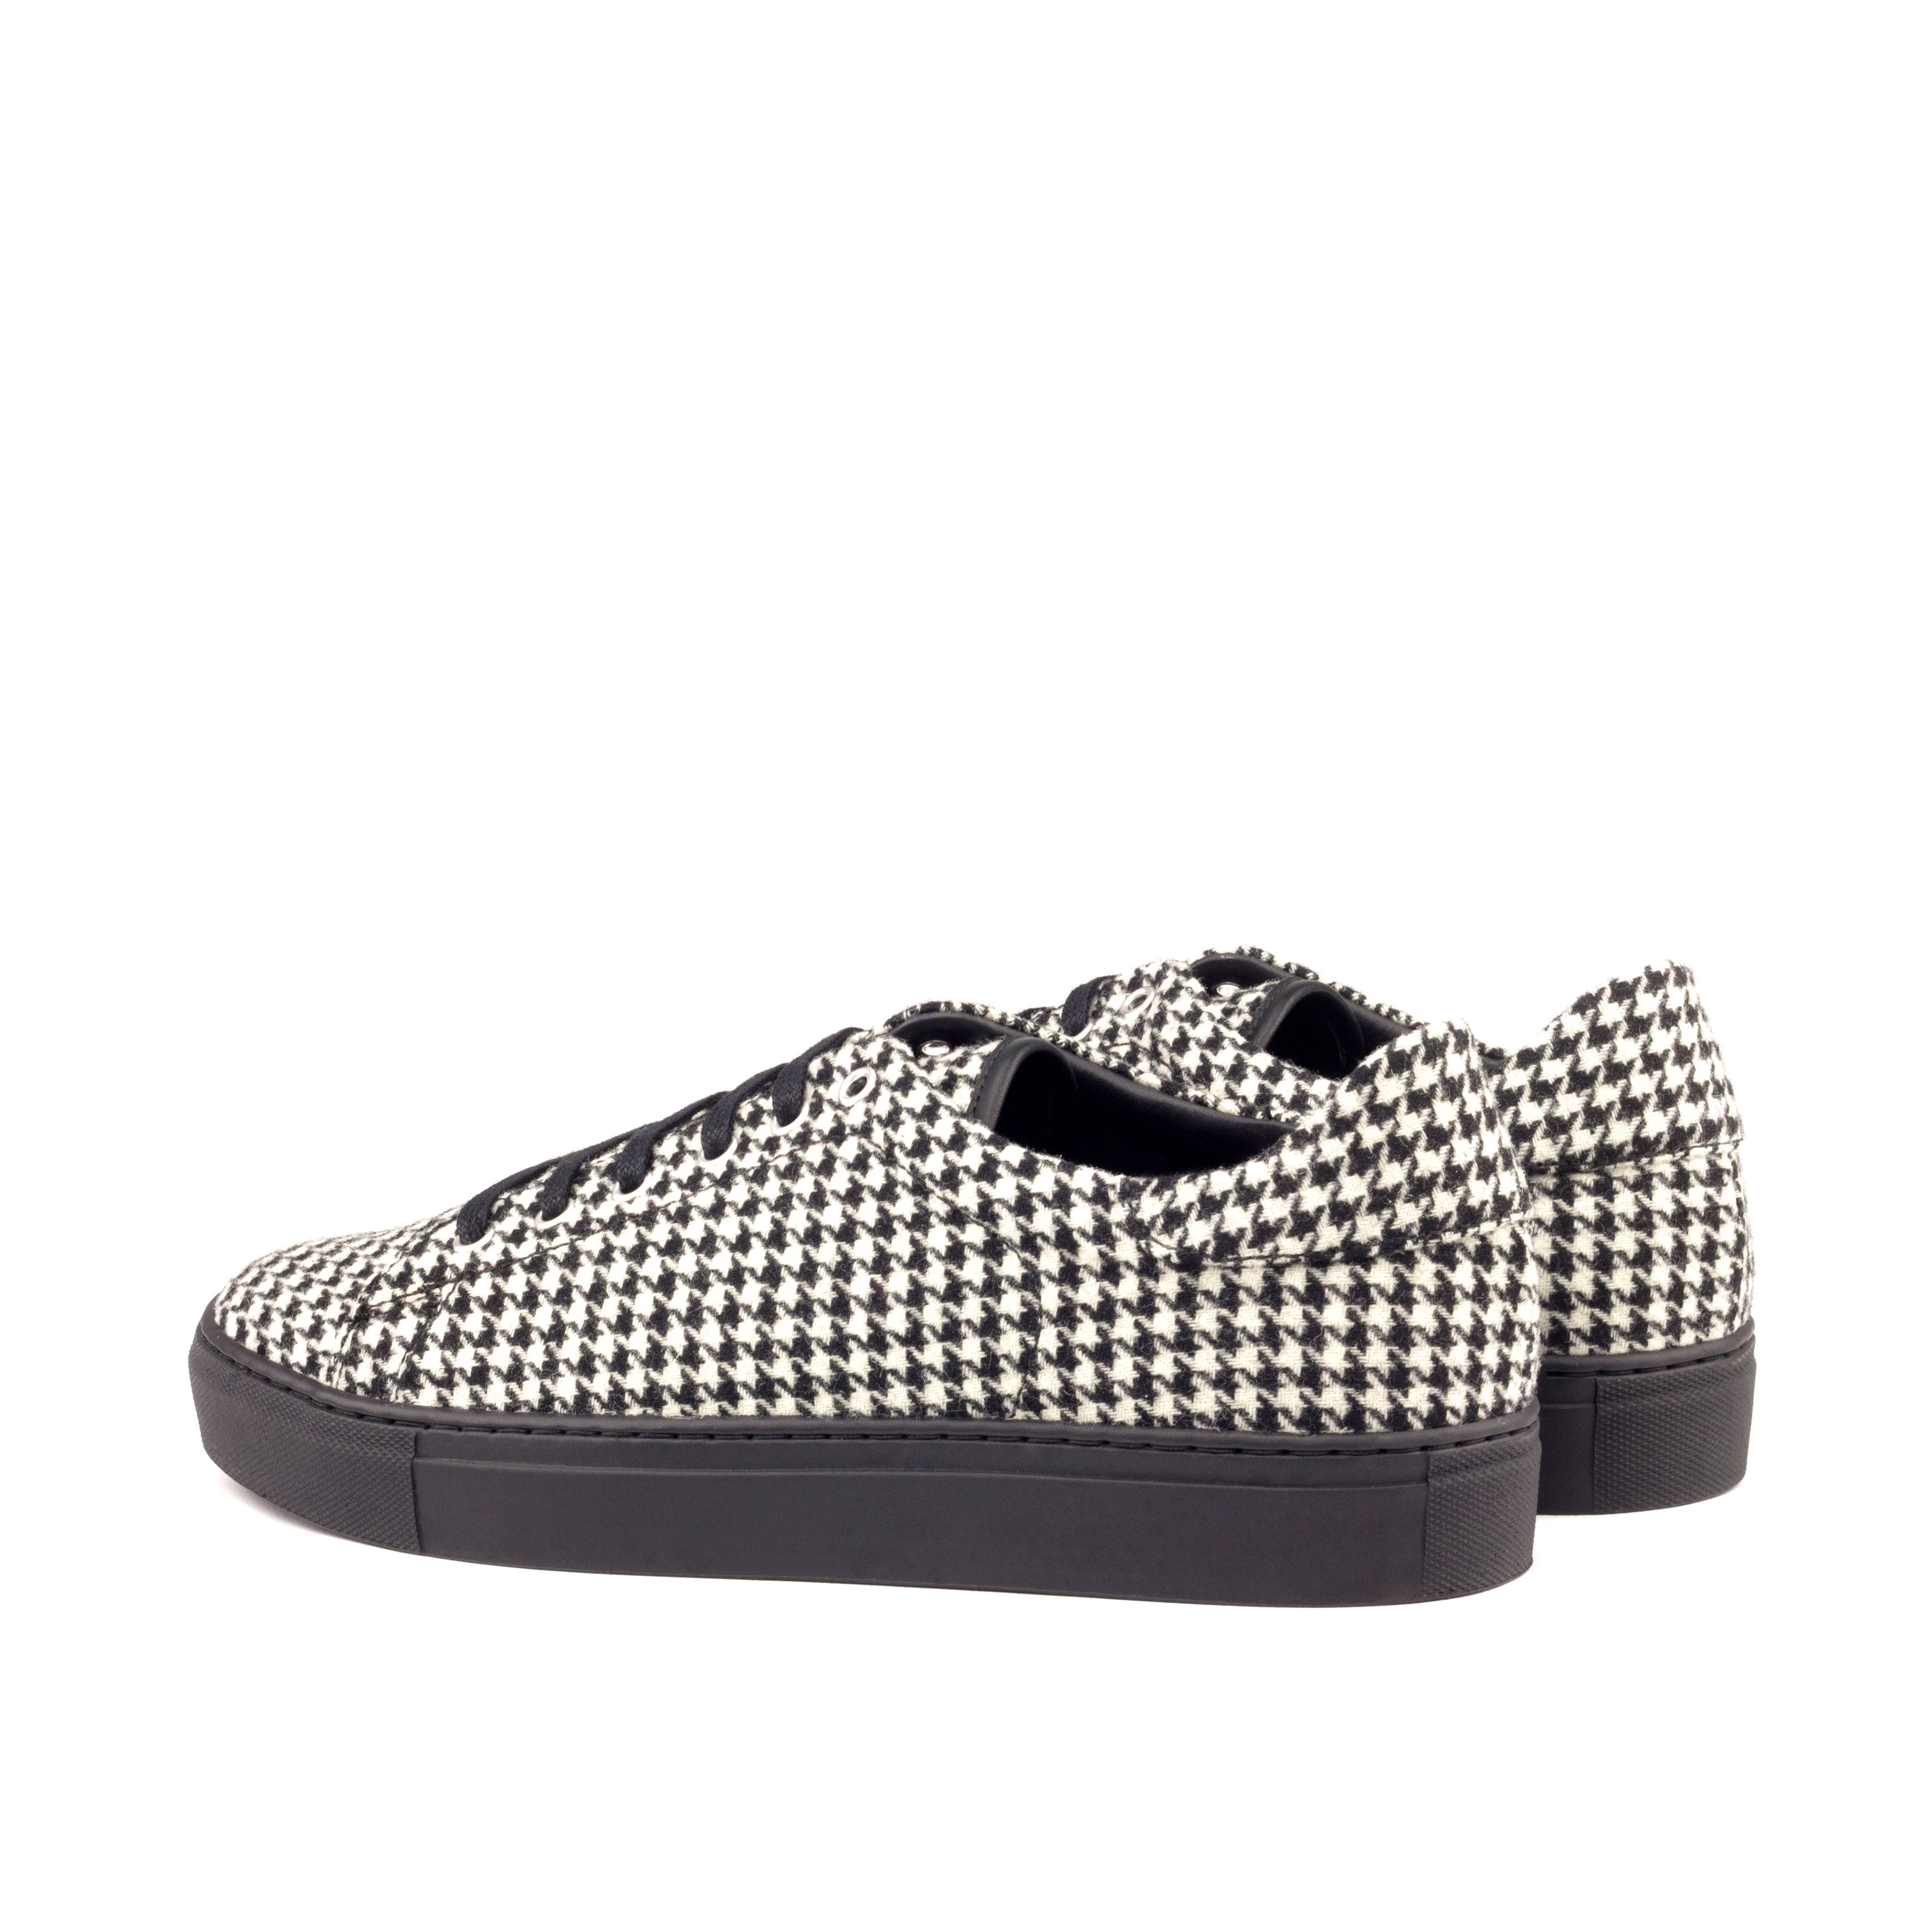 MANOR OF LONDON'The Perry' Houndstooth Tennis Trainer Luxury Custom Initials Monogrammed Back Side View